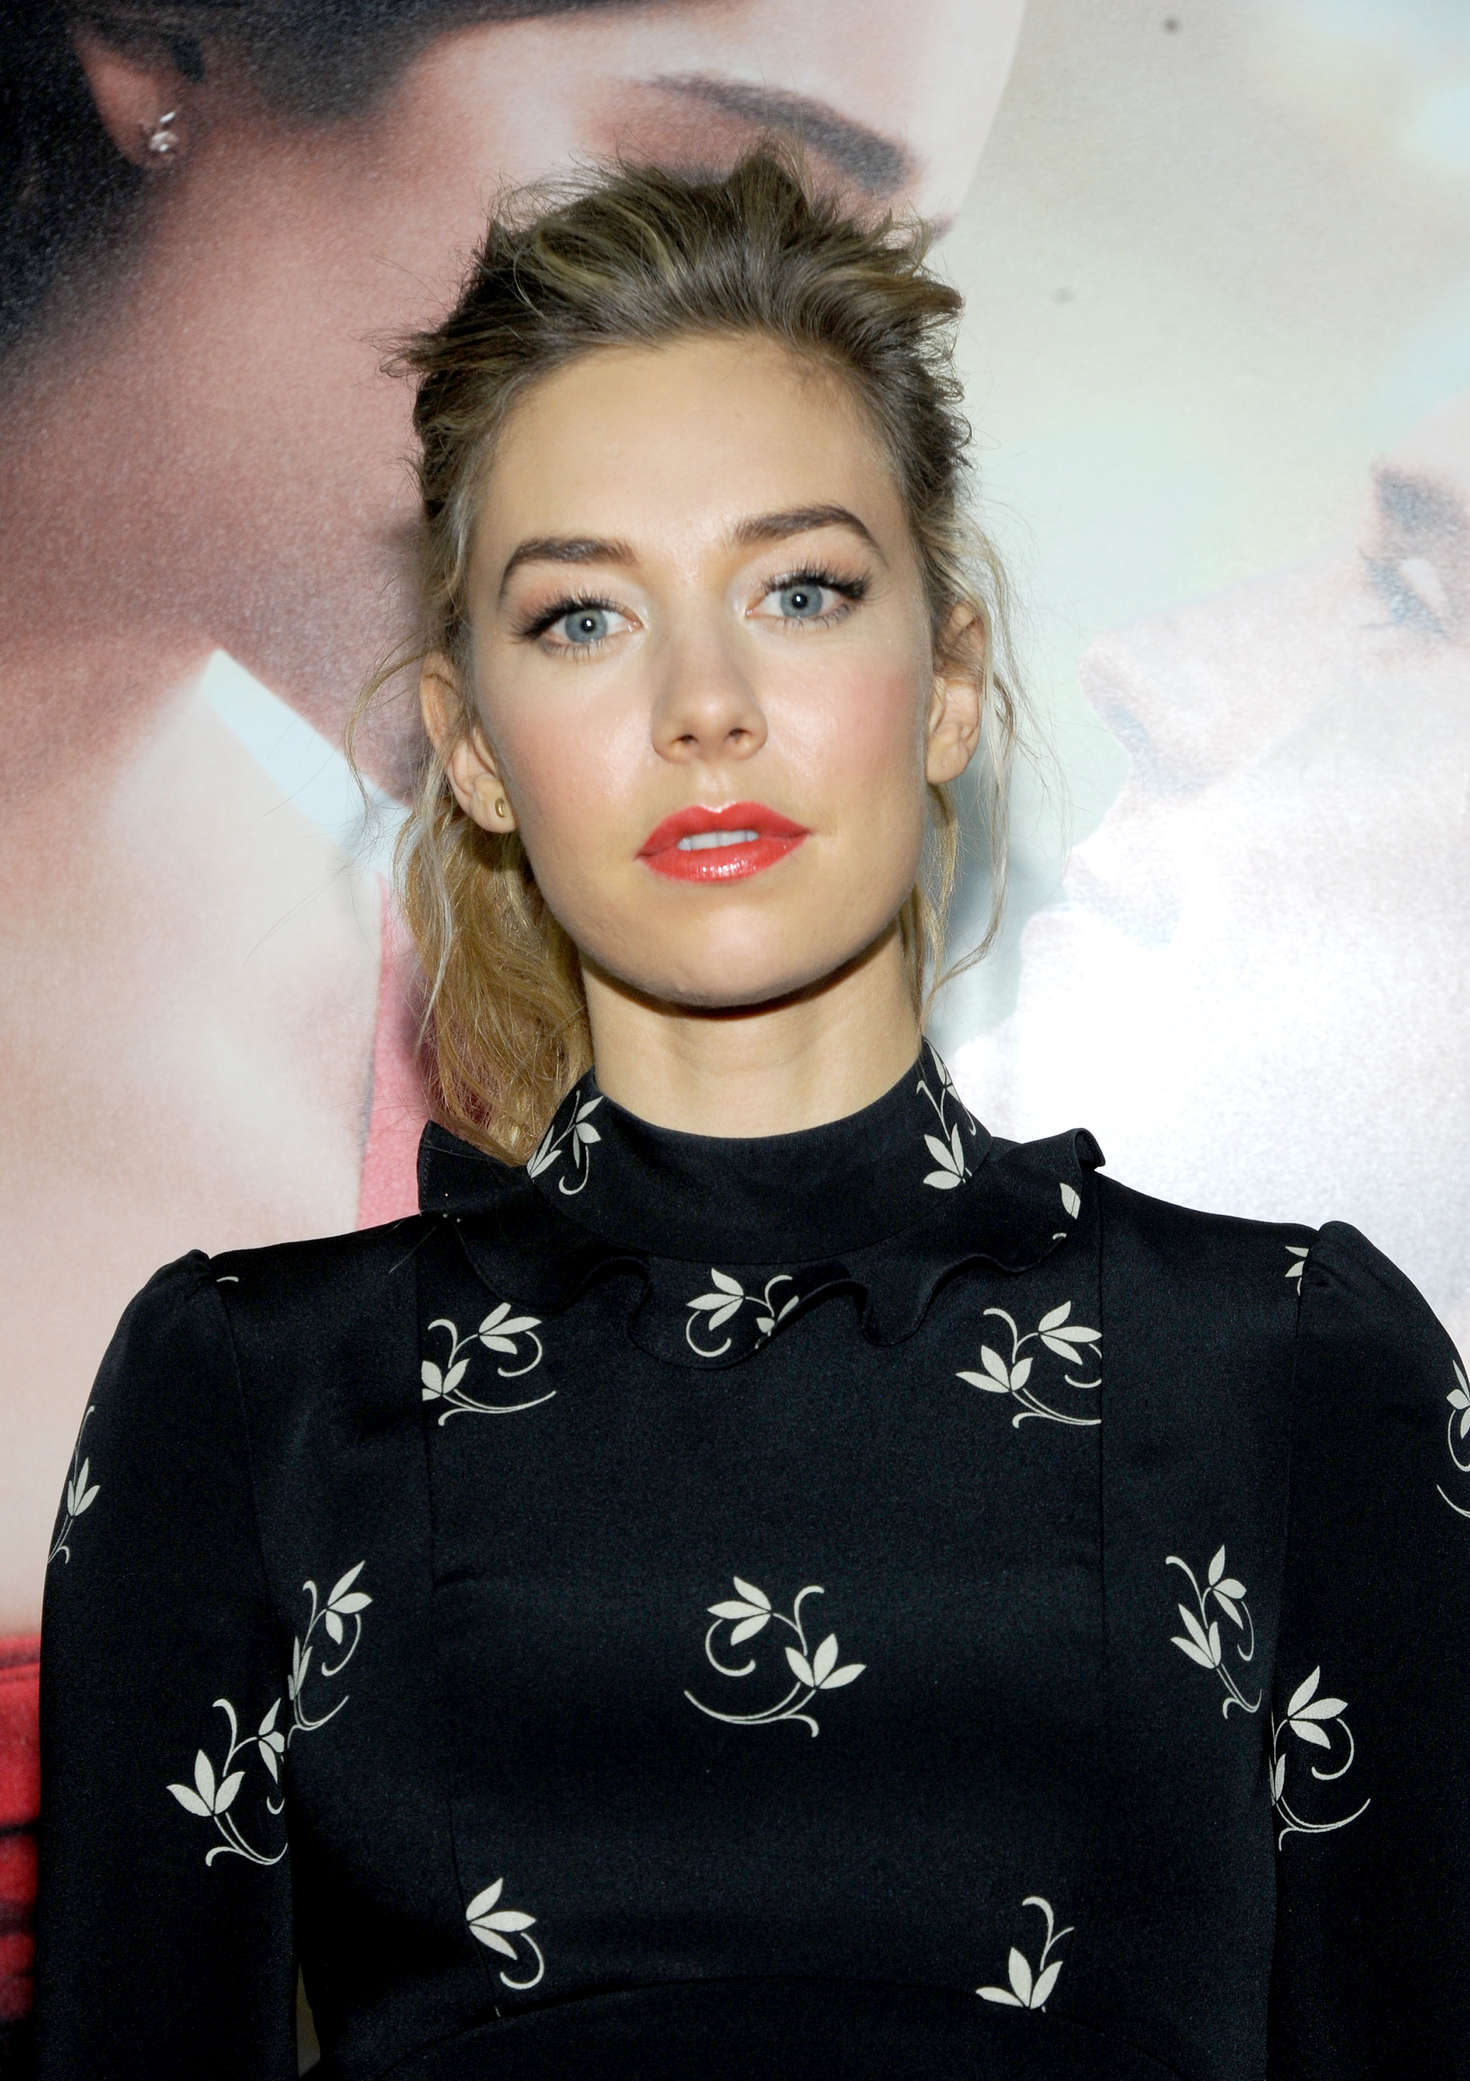 Iphone 7 Hd Wallpapers 1080p Vanessa Kirby Wallpapers High Quality Download Free